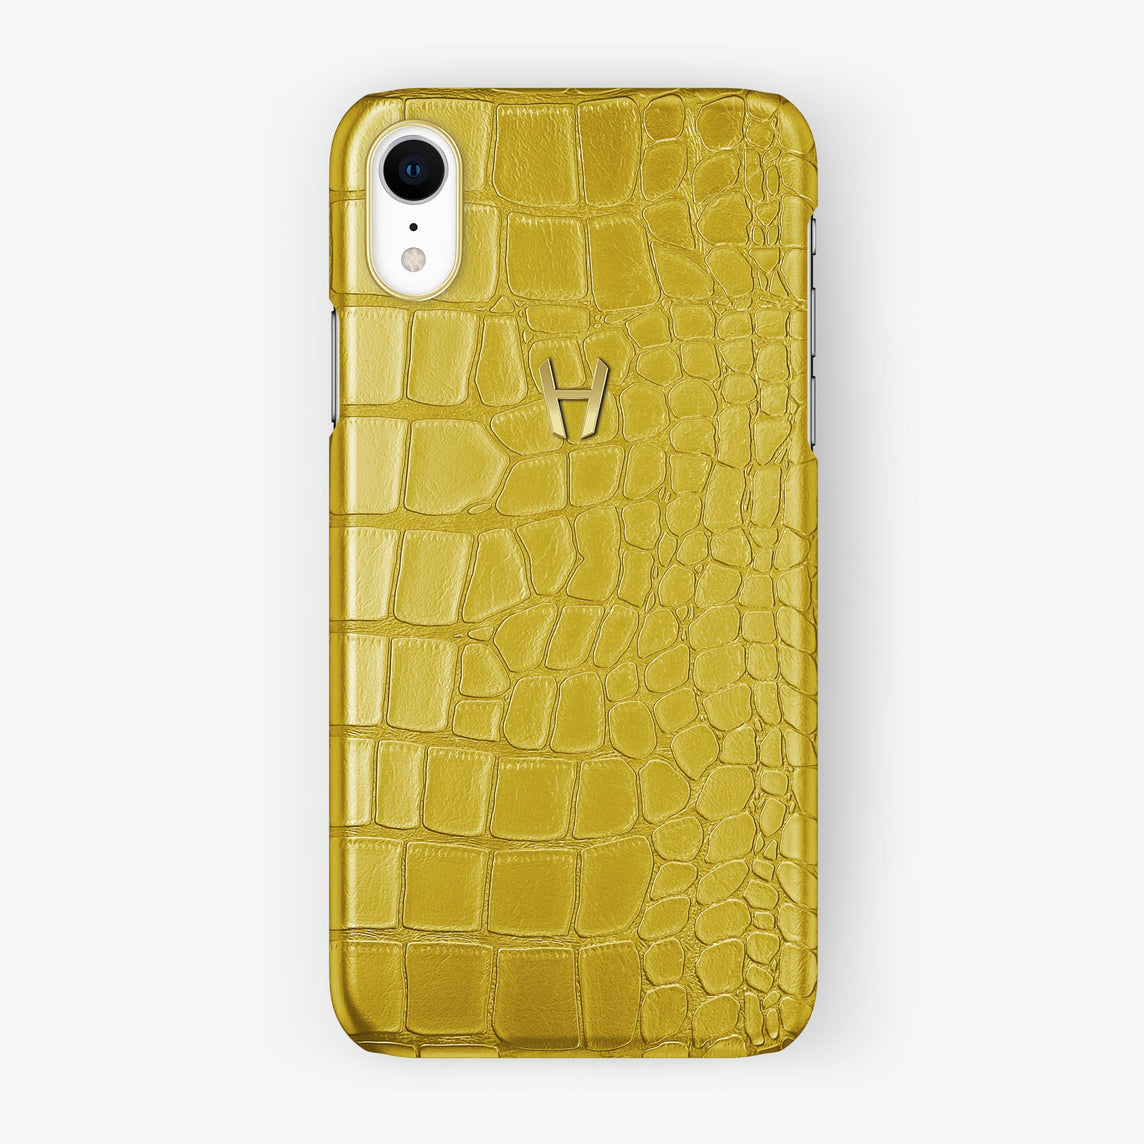 Alligator [iPhone Case] [model:iphone-xr-case] [colour:yellow] [finishing:yellow-gold]